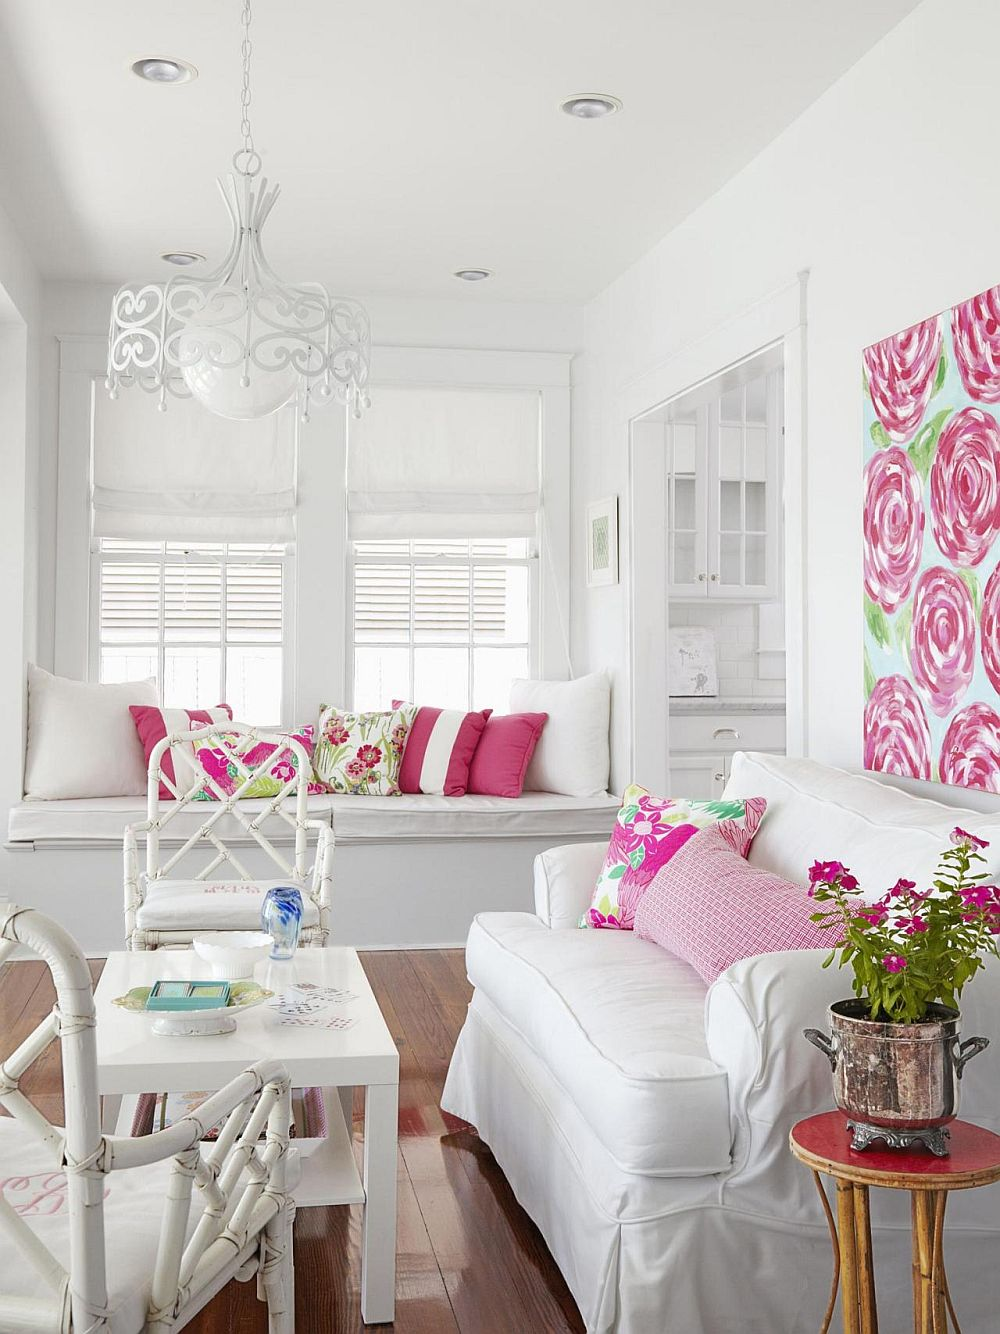 30 Sunroom Seating Ideas from the Comfy to the Creative